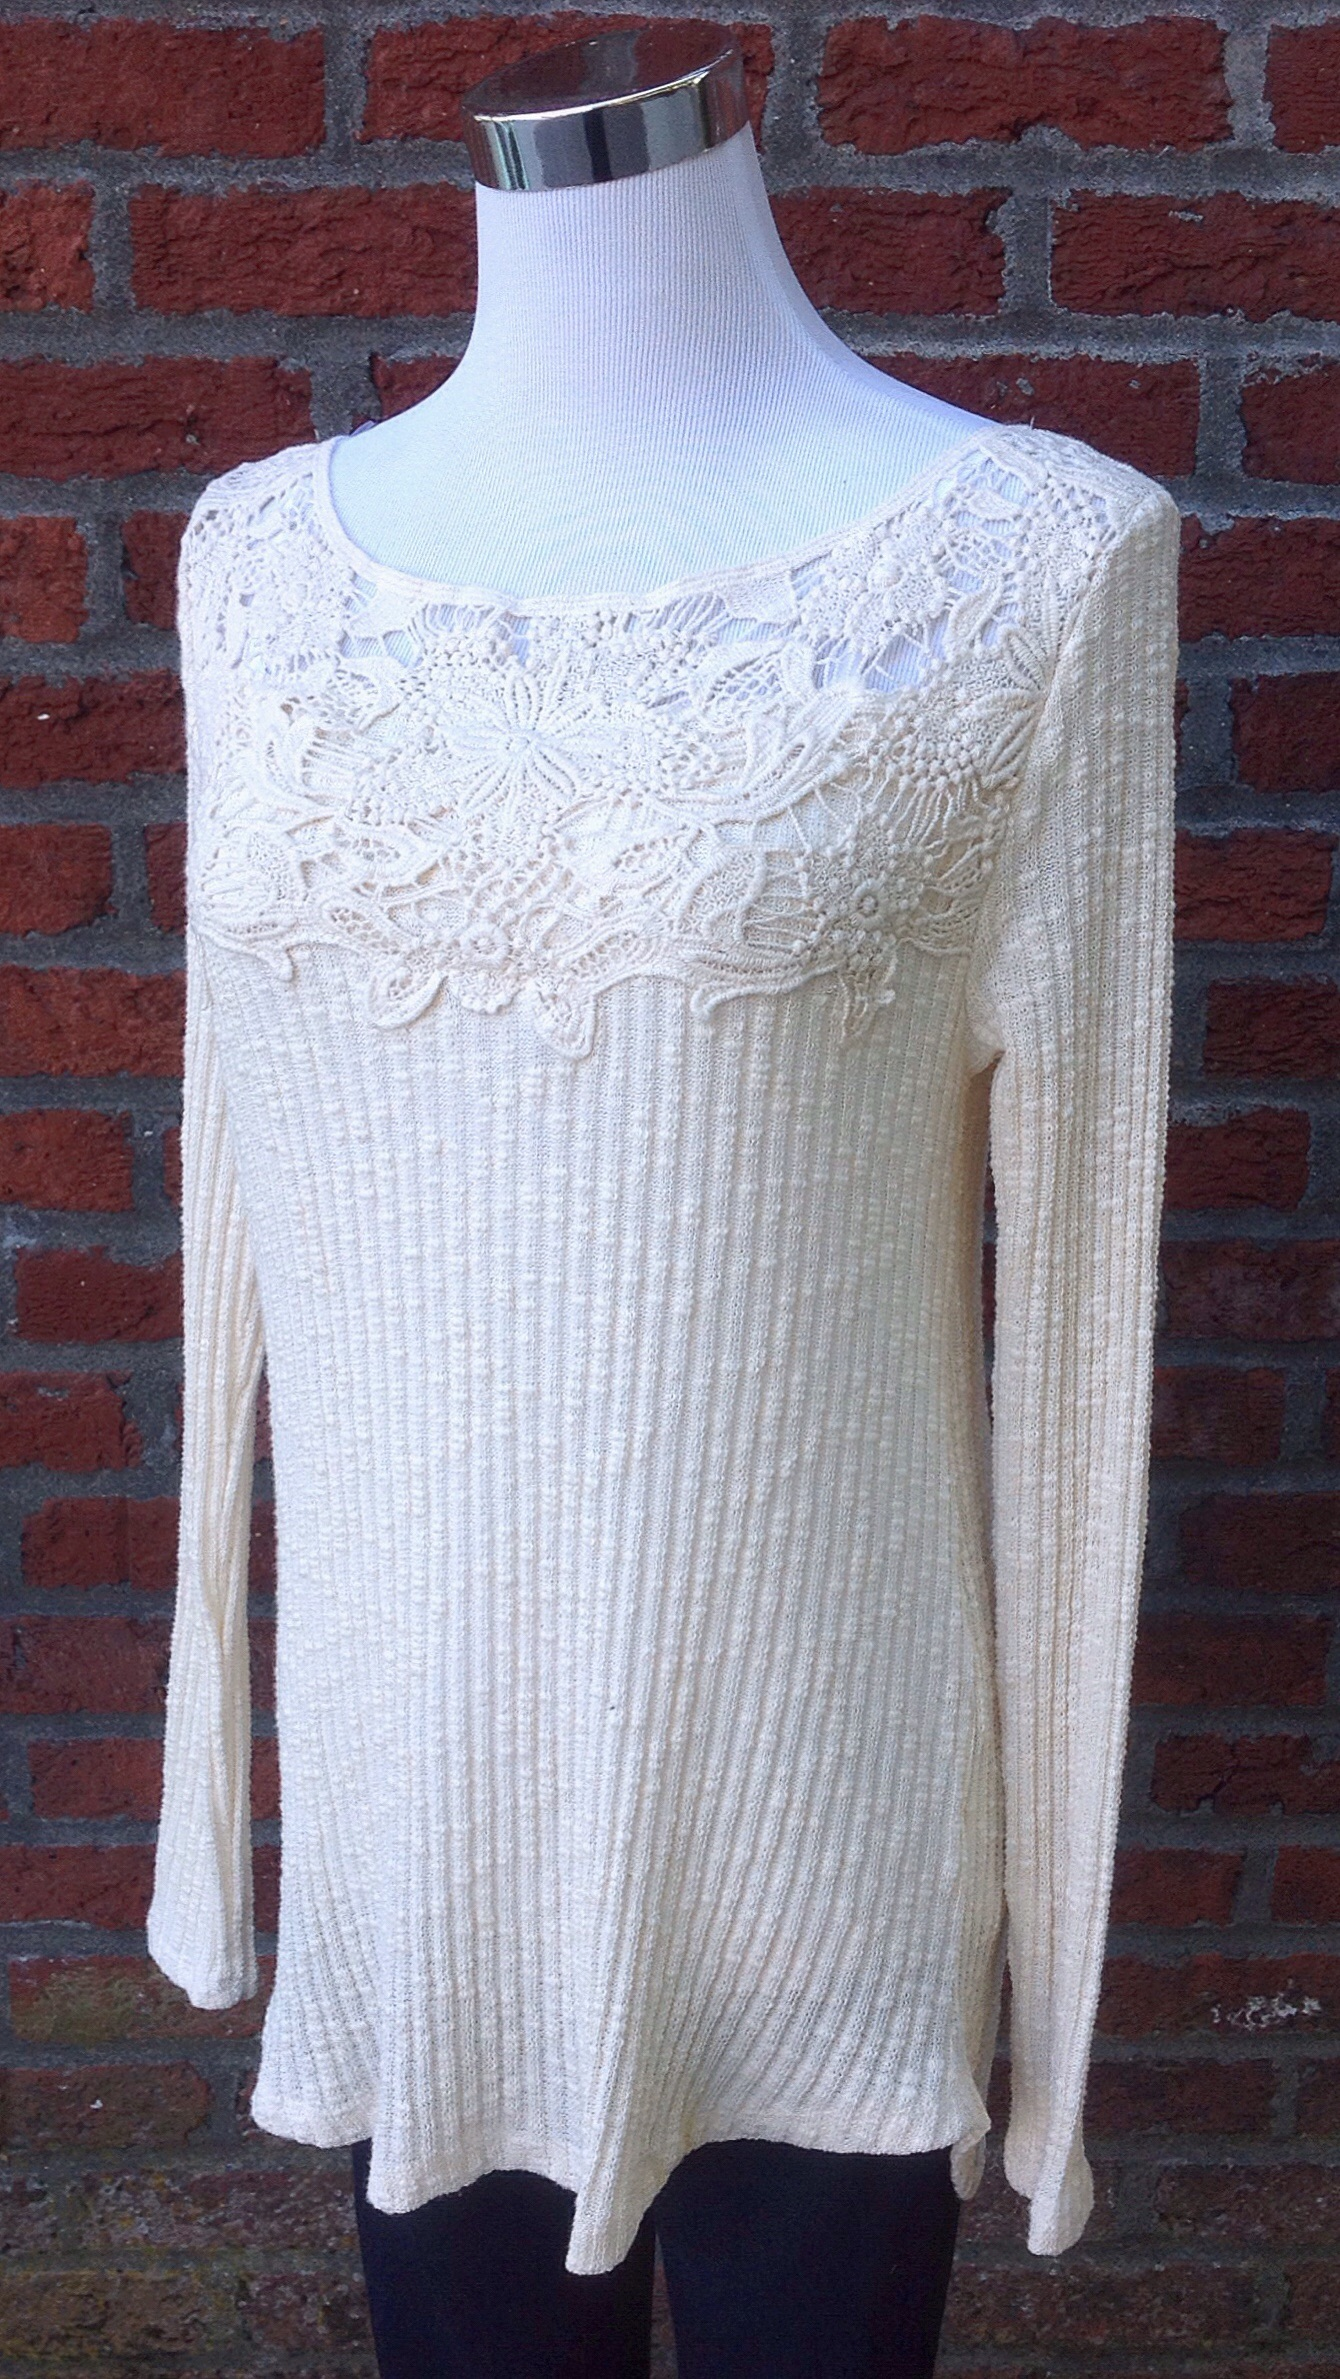 Rib knit top with crochet lace yoke in natural, $35